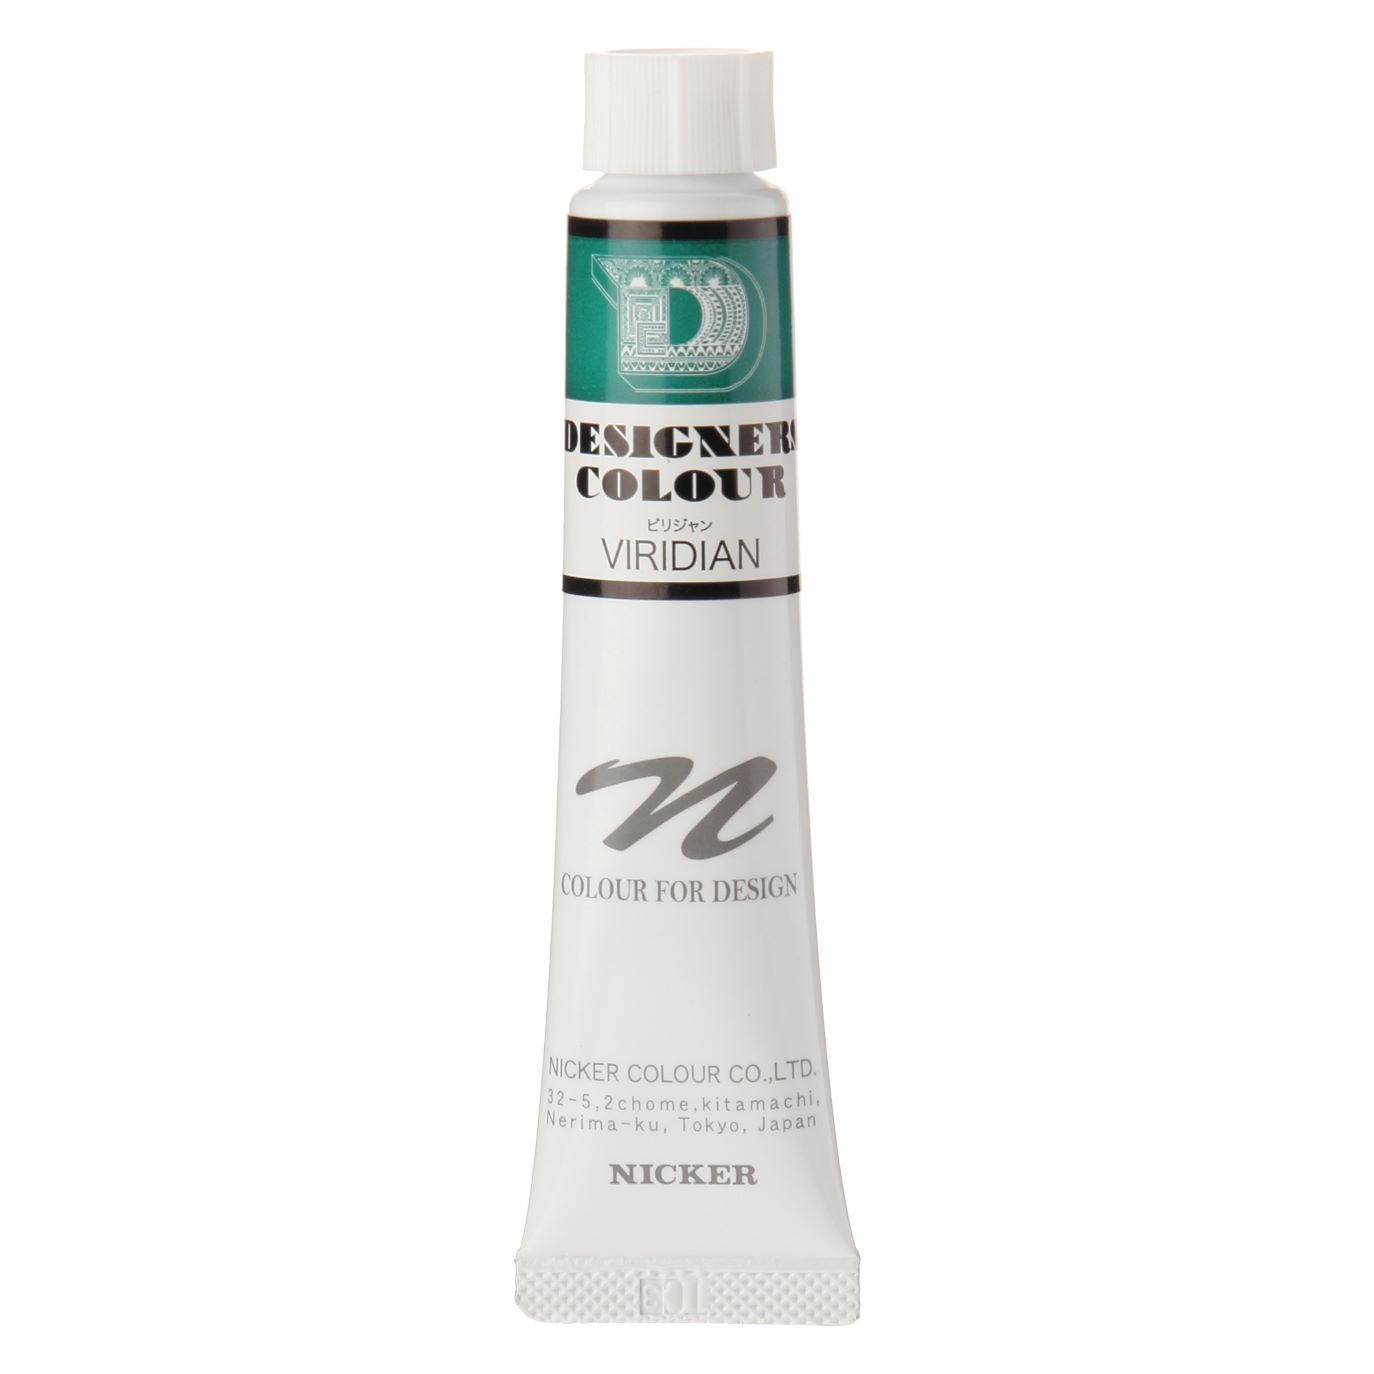 DESIGNERS COLOUR 20ml 547 VIRIDIAN